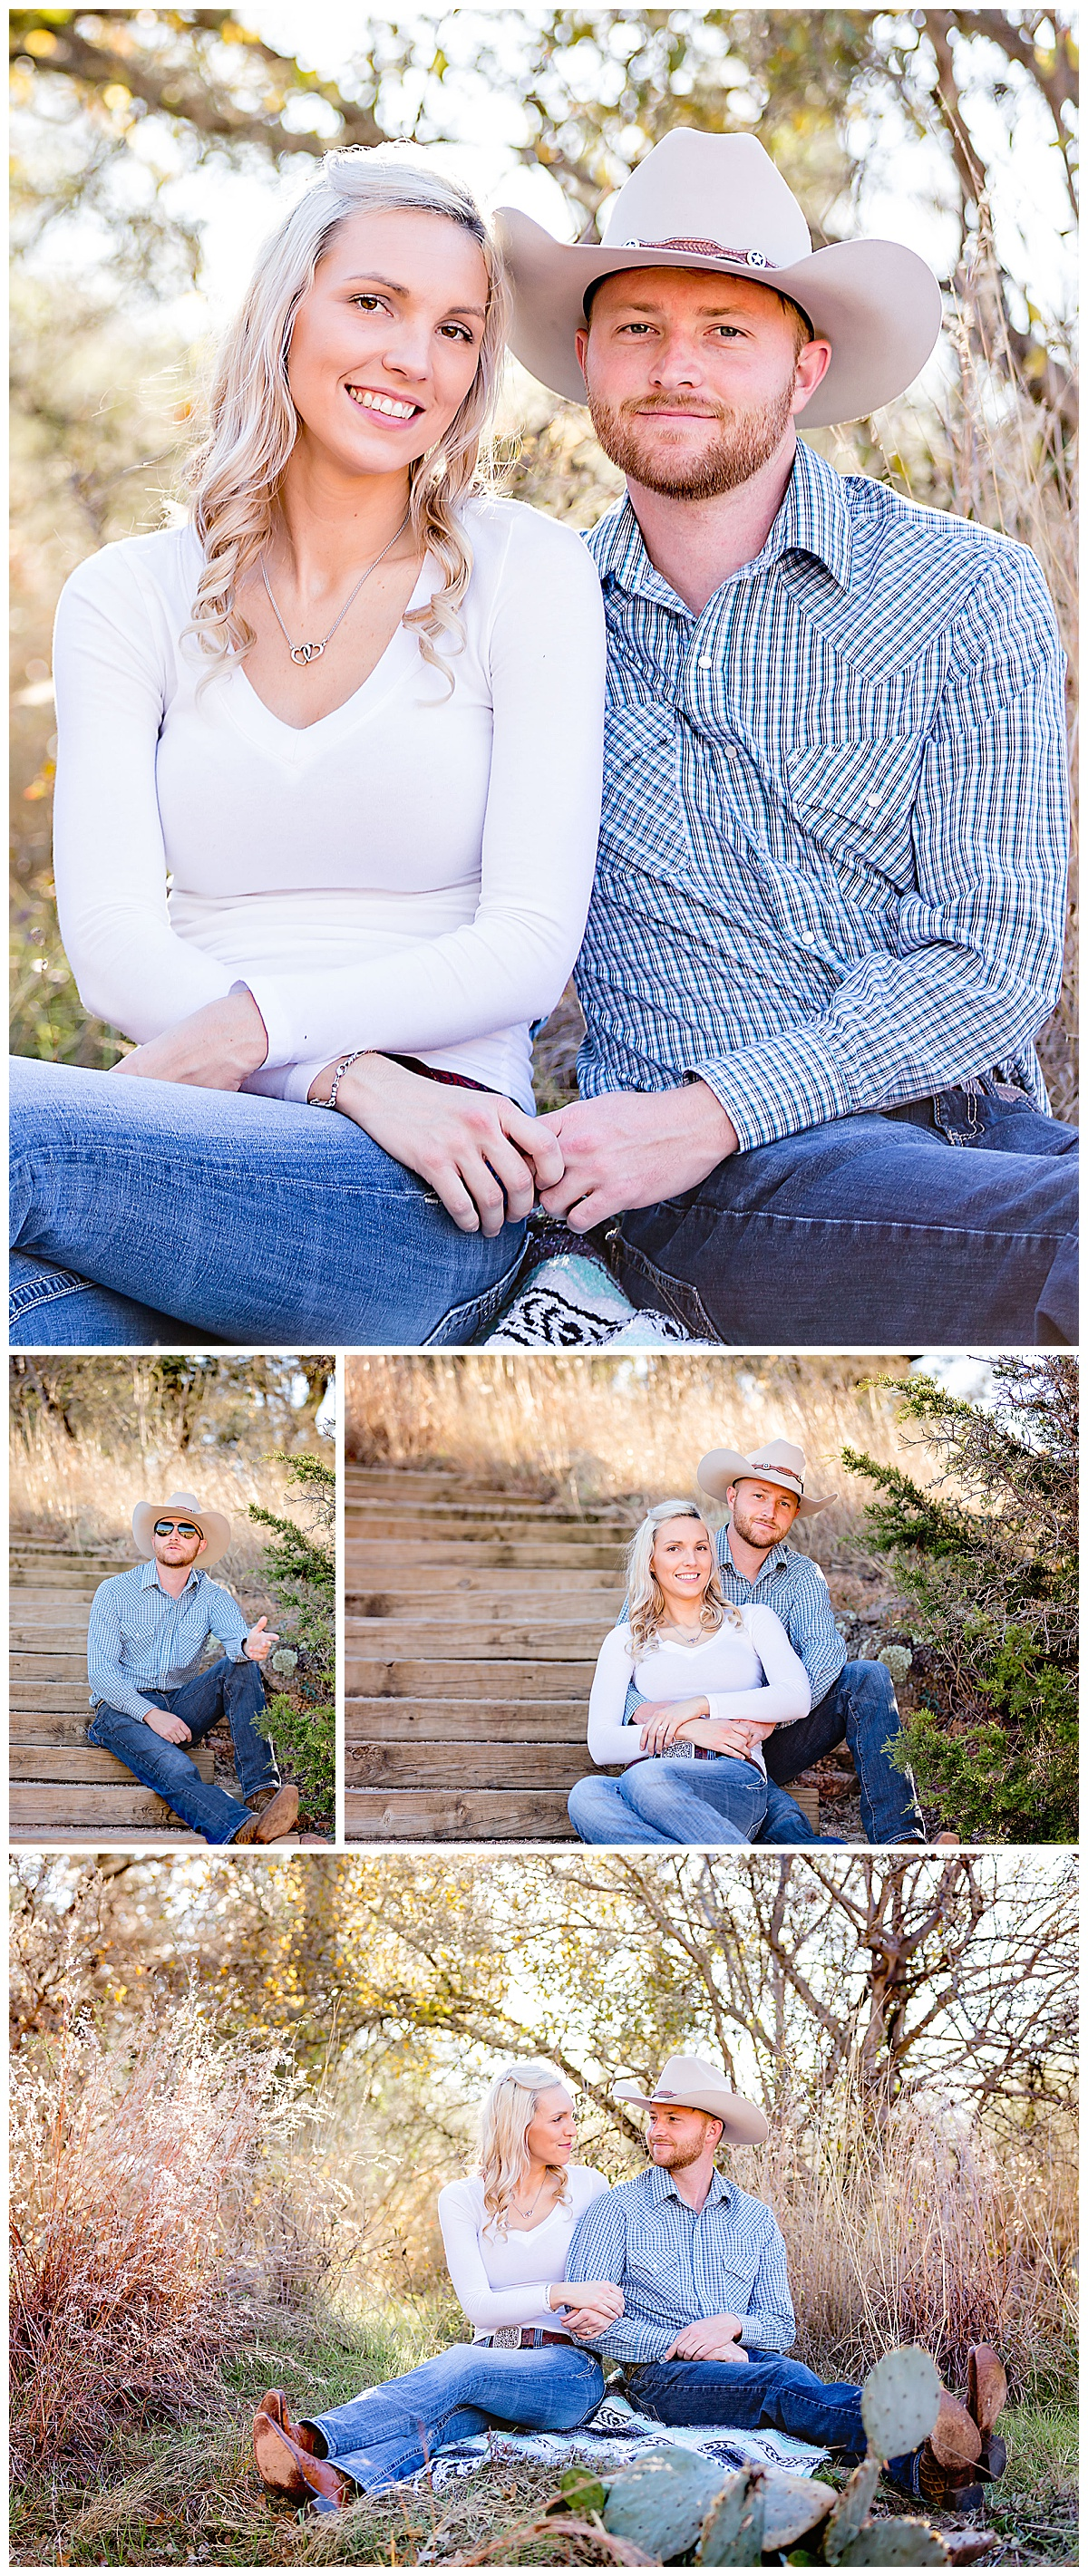 South-Texas-Wedding-Photographer-Engagement-Photos-Enchanted-Rock-Fredericksburg-Sunset-Couples-Carly-Barton-Photography_0016.jpg